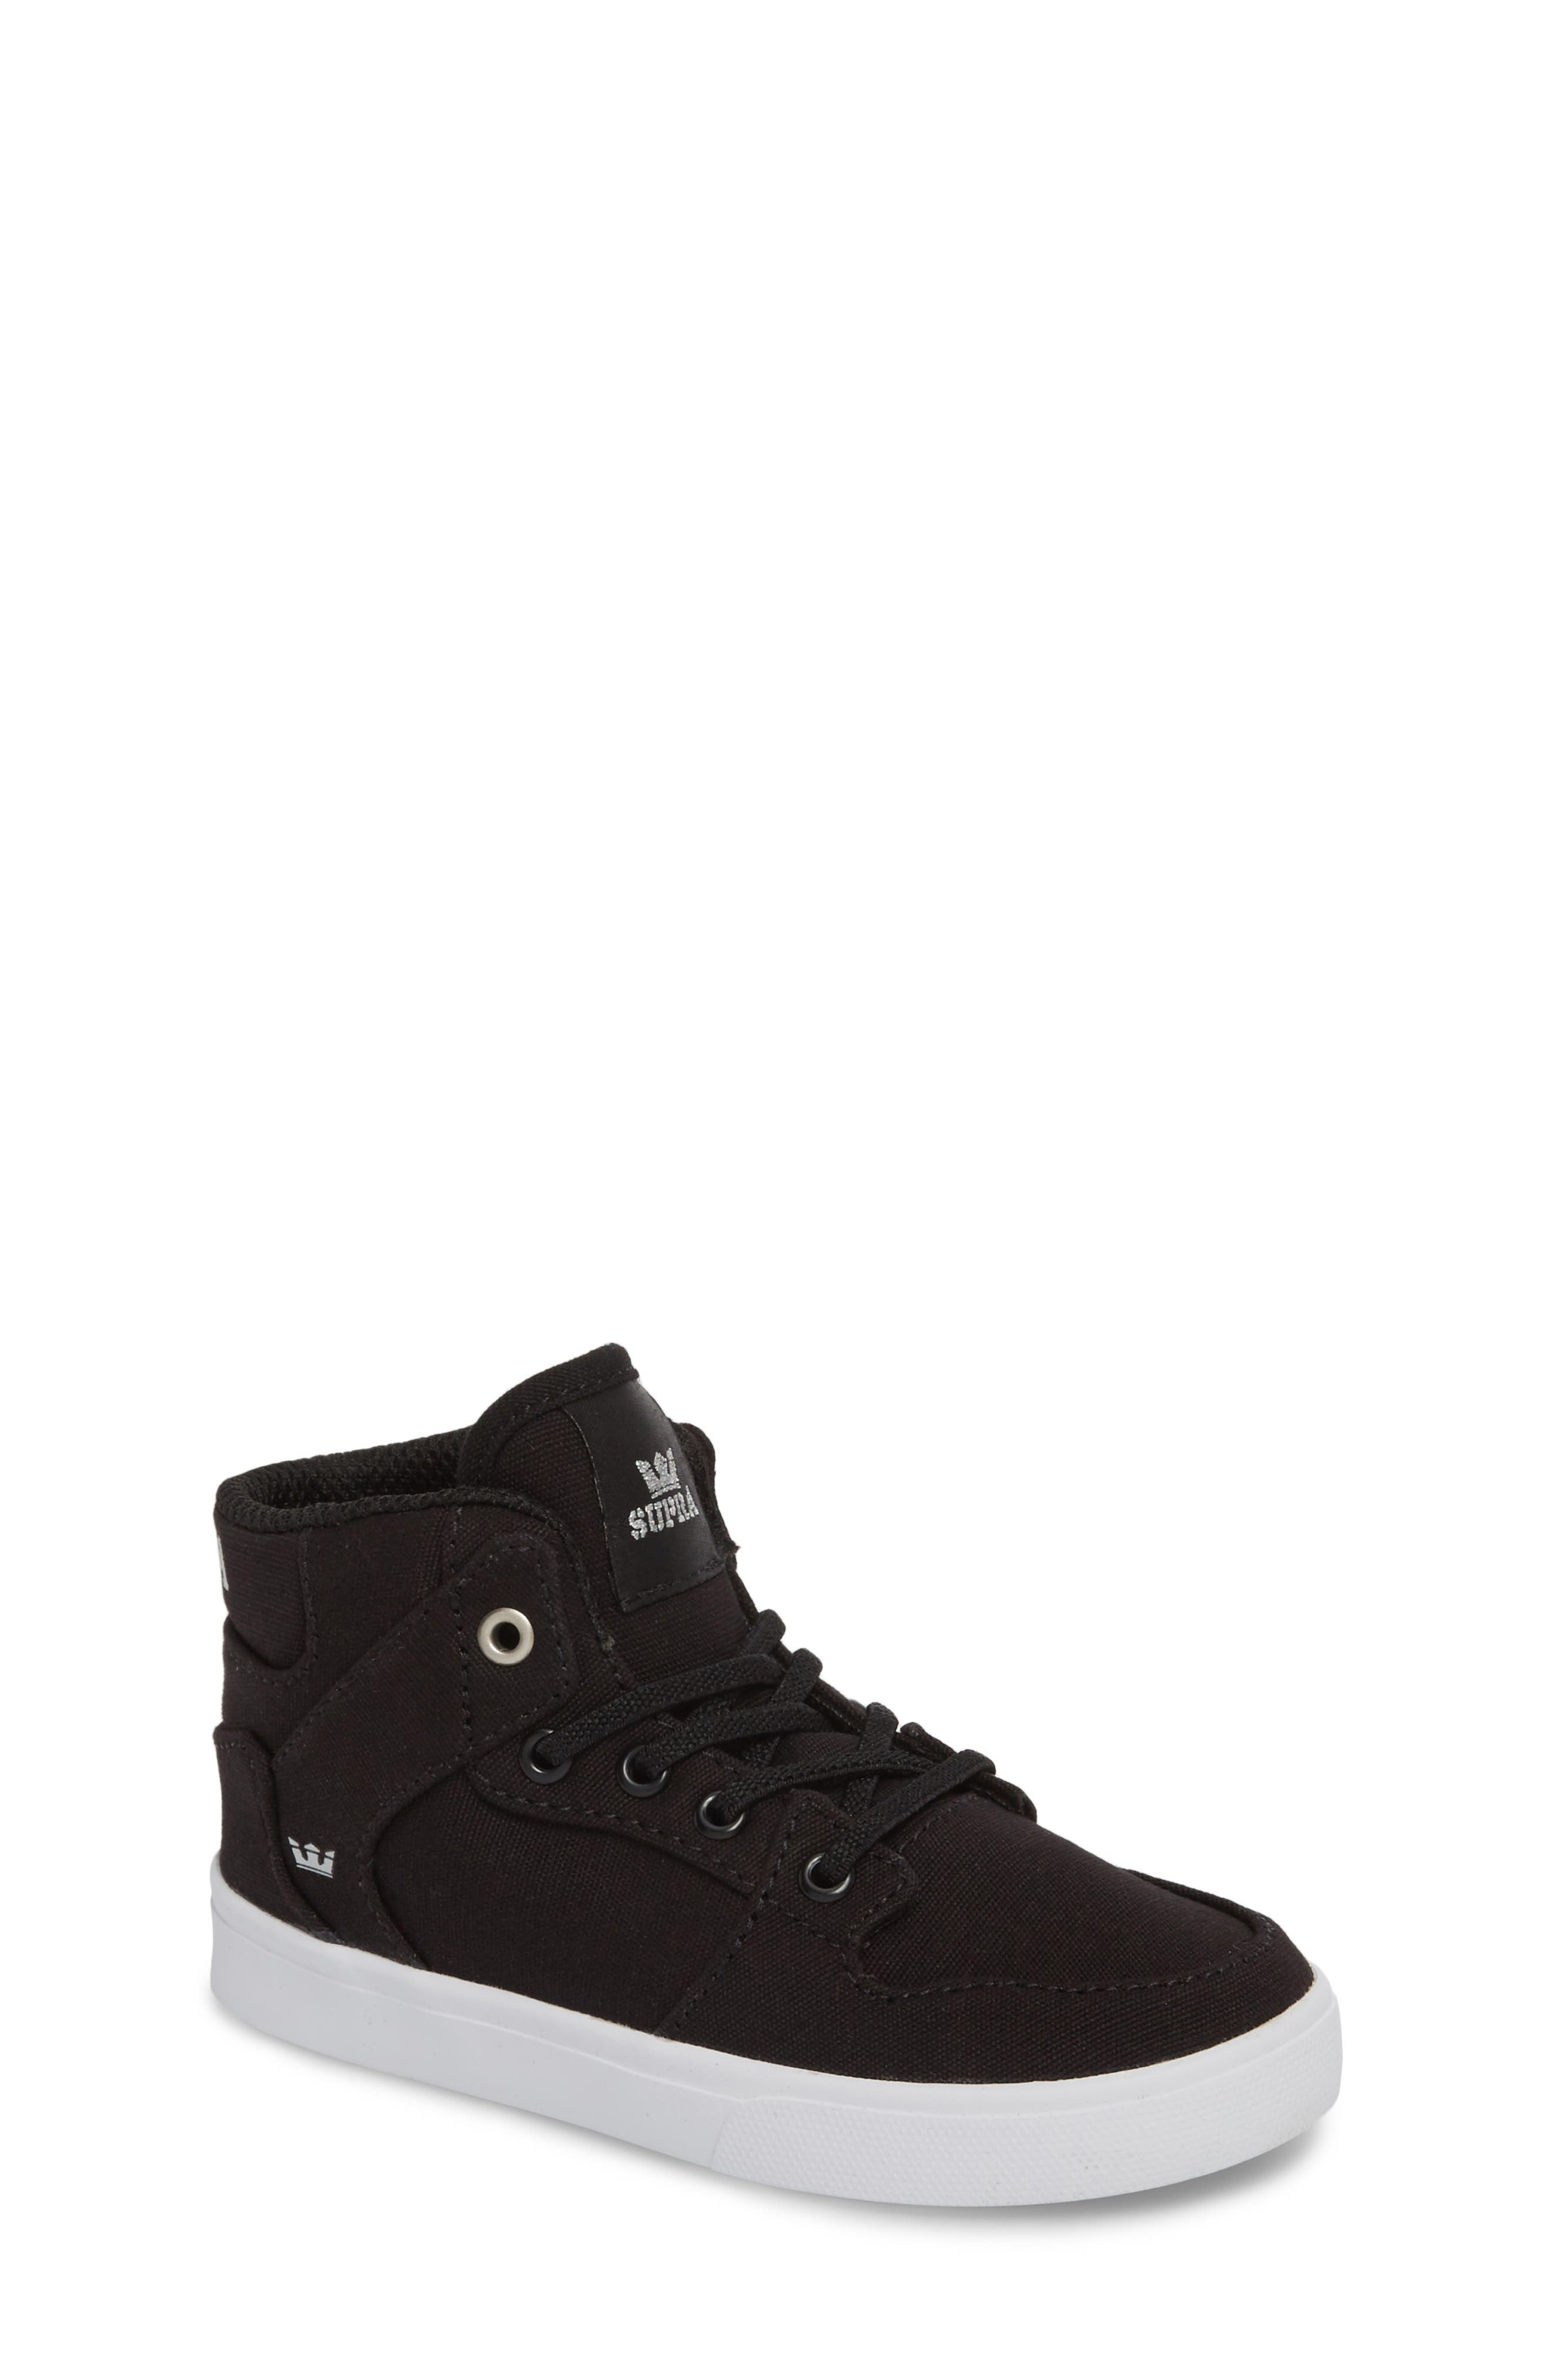 'Vaider' High Top Sneaker,                         Main,                         color, Black/ White